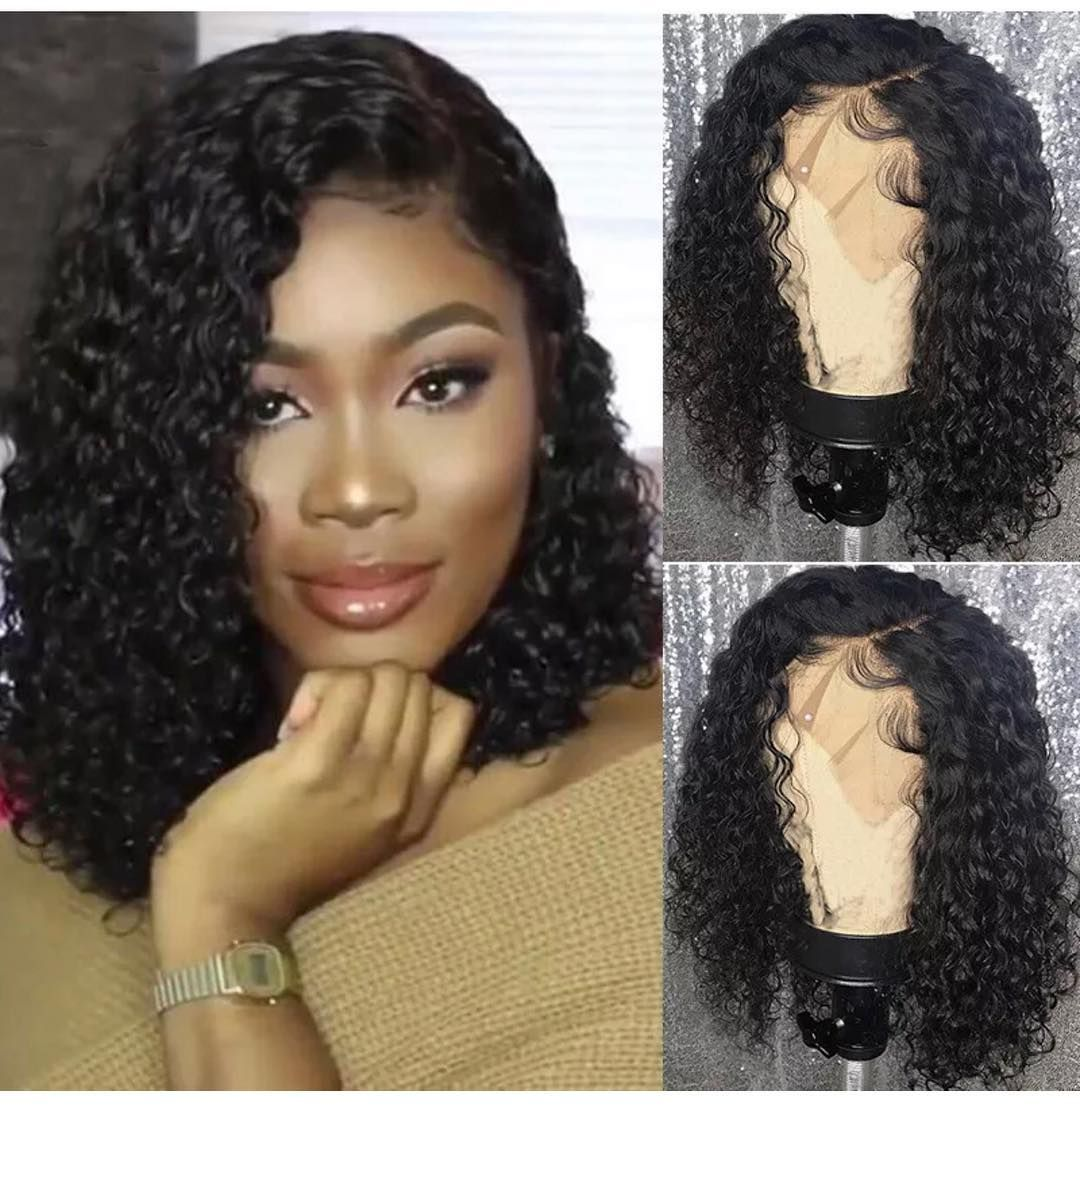 Colodo Brazilian Remy Hair Wig With Baby Hair Pre Plucked Natural Full Lace Human Hair Wigs 180 Short Water Wig Hairstyles Human Hair Lace Wigs Human Hair Wigs